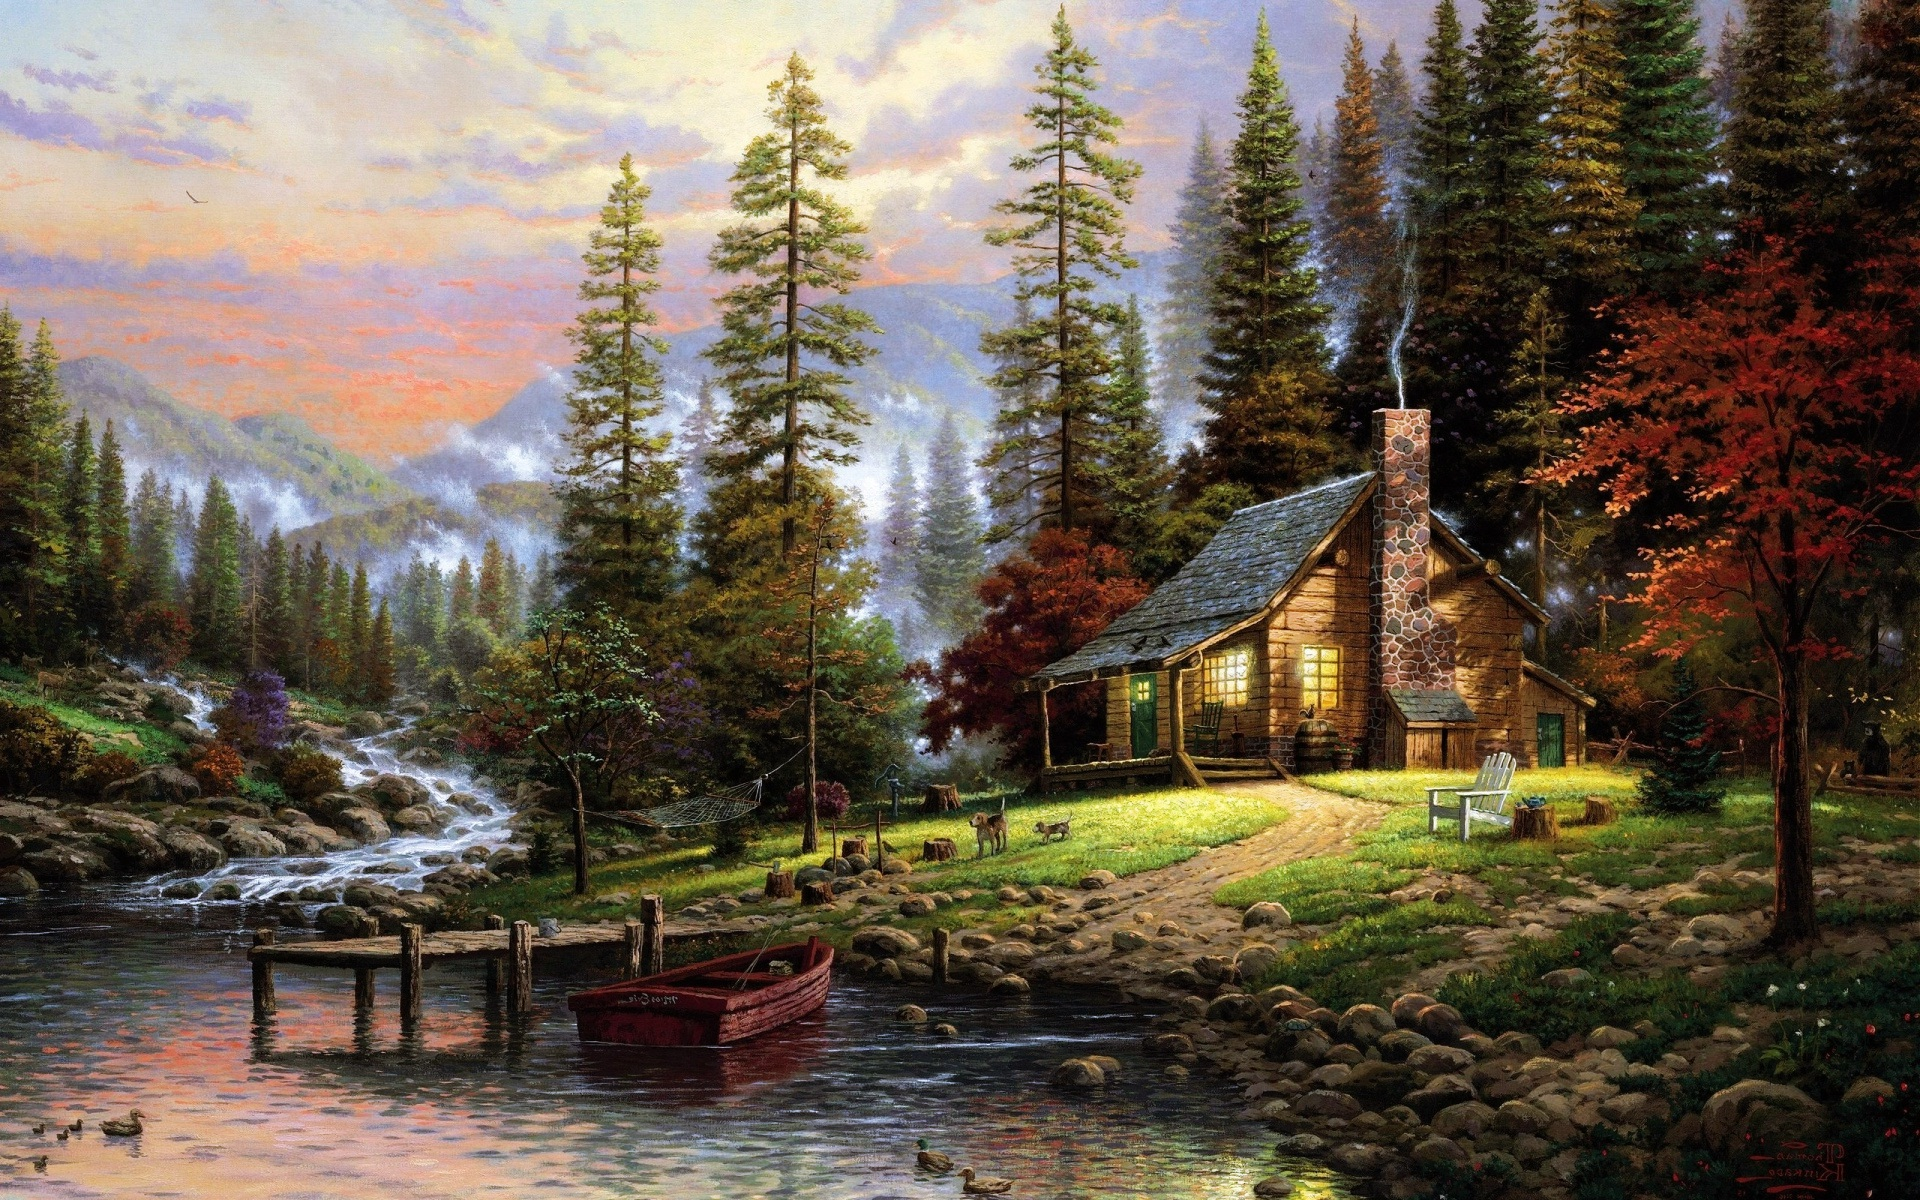 September 3 2015 By Stephen Comments Off on Mountain Cabin Wallpapers 1920x1200